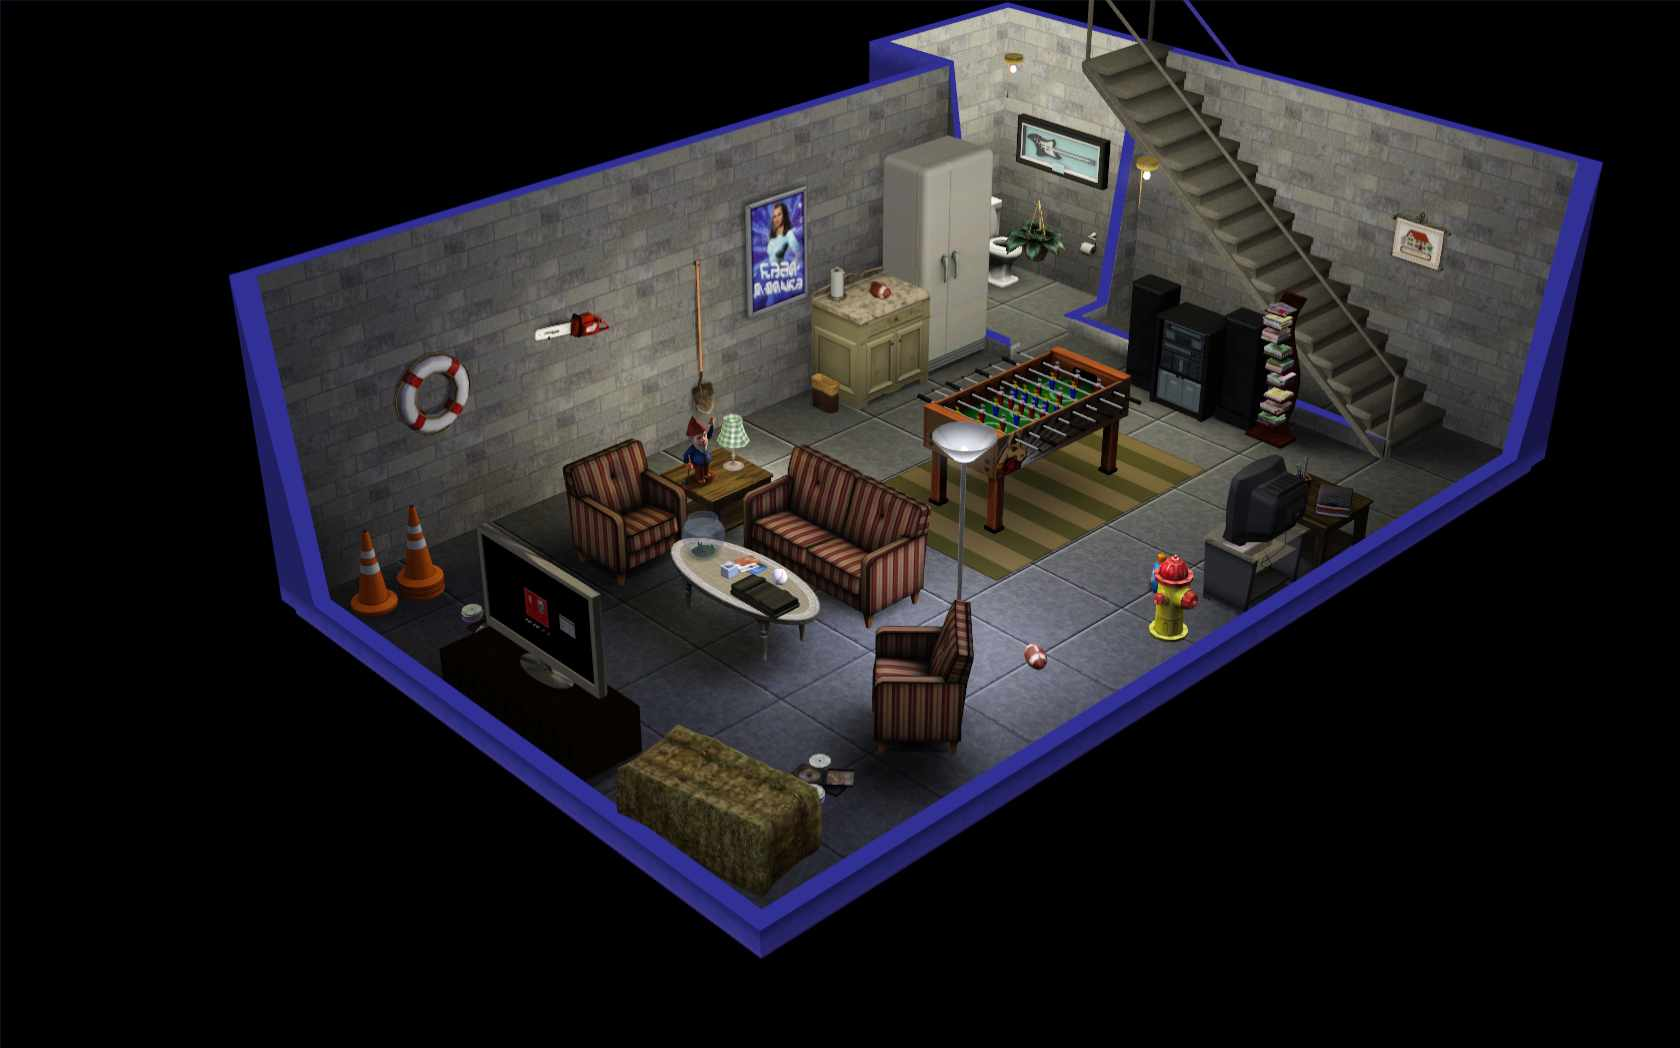 Living Room Ideas Sims 3 the sims 3: room build ideas and examples